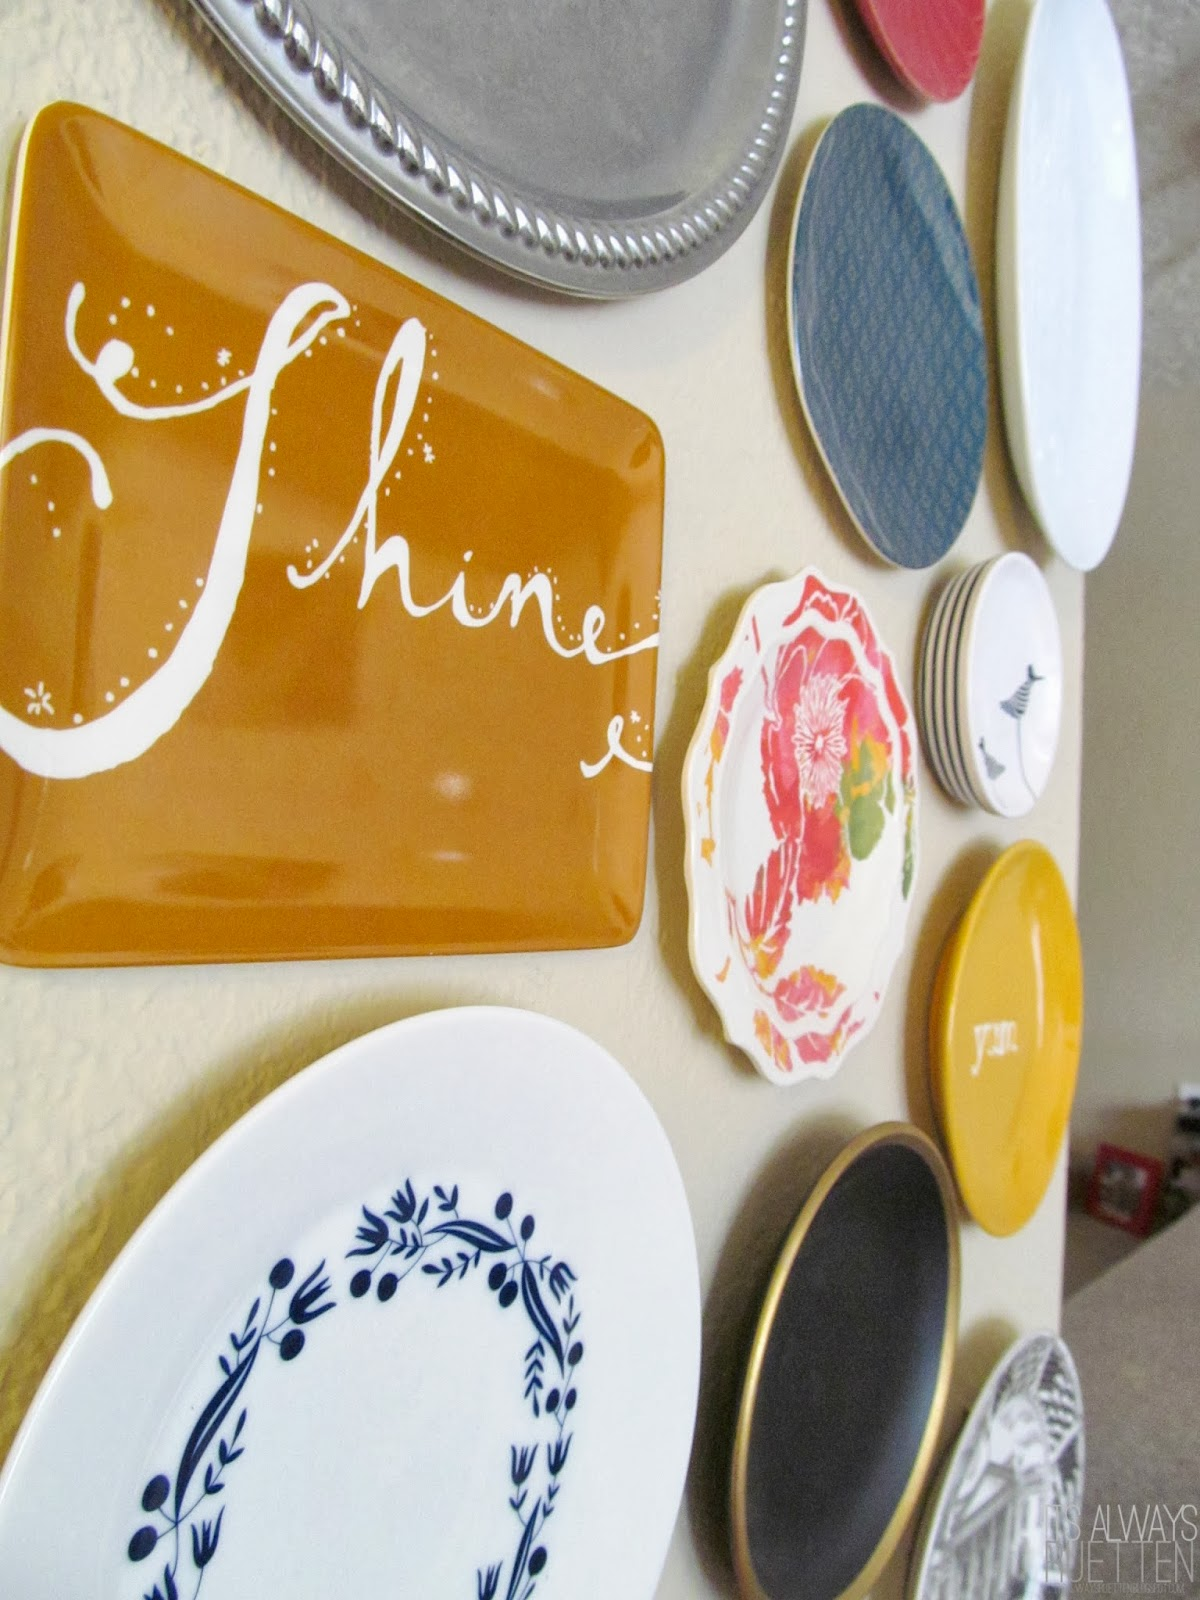 How to hang plates damage free for a rental (or just a cleaner look).